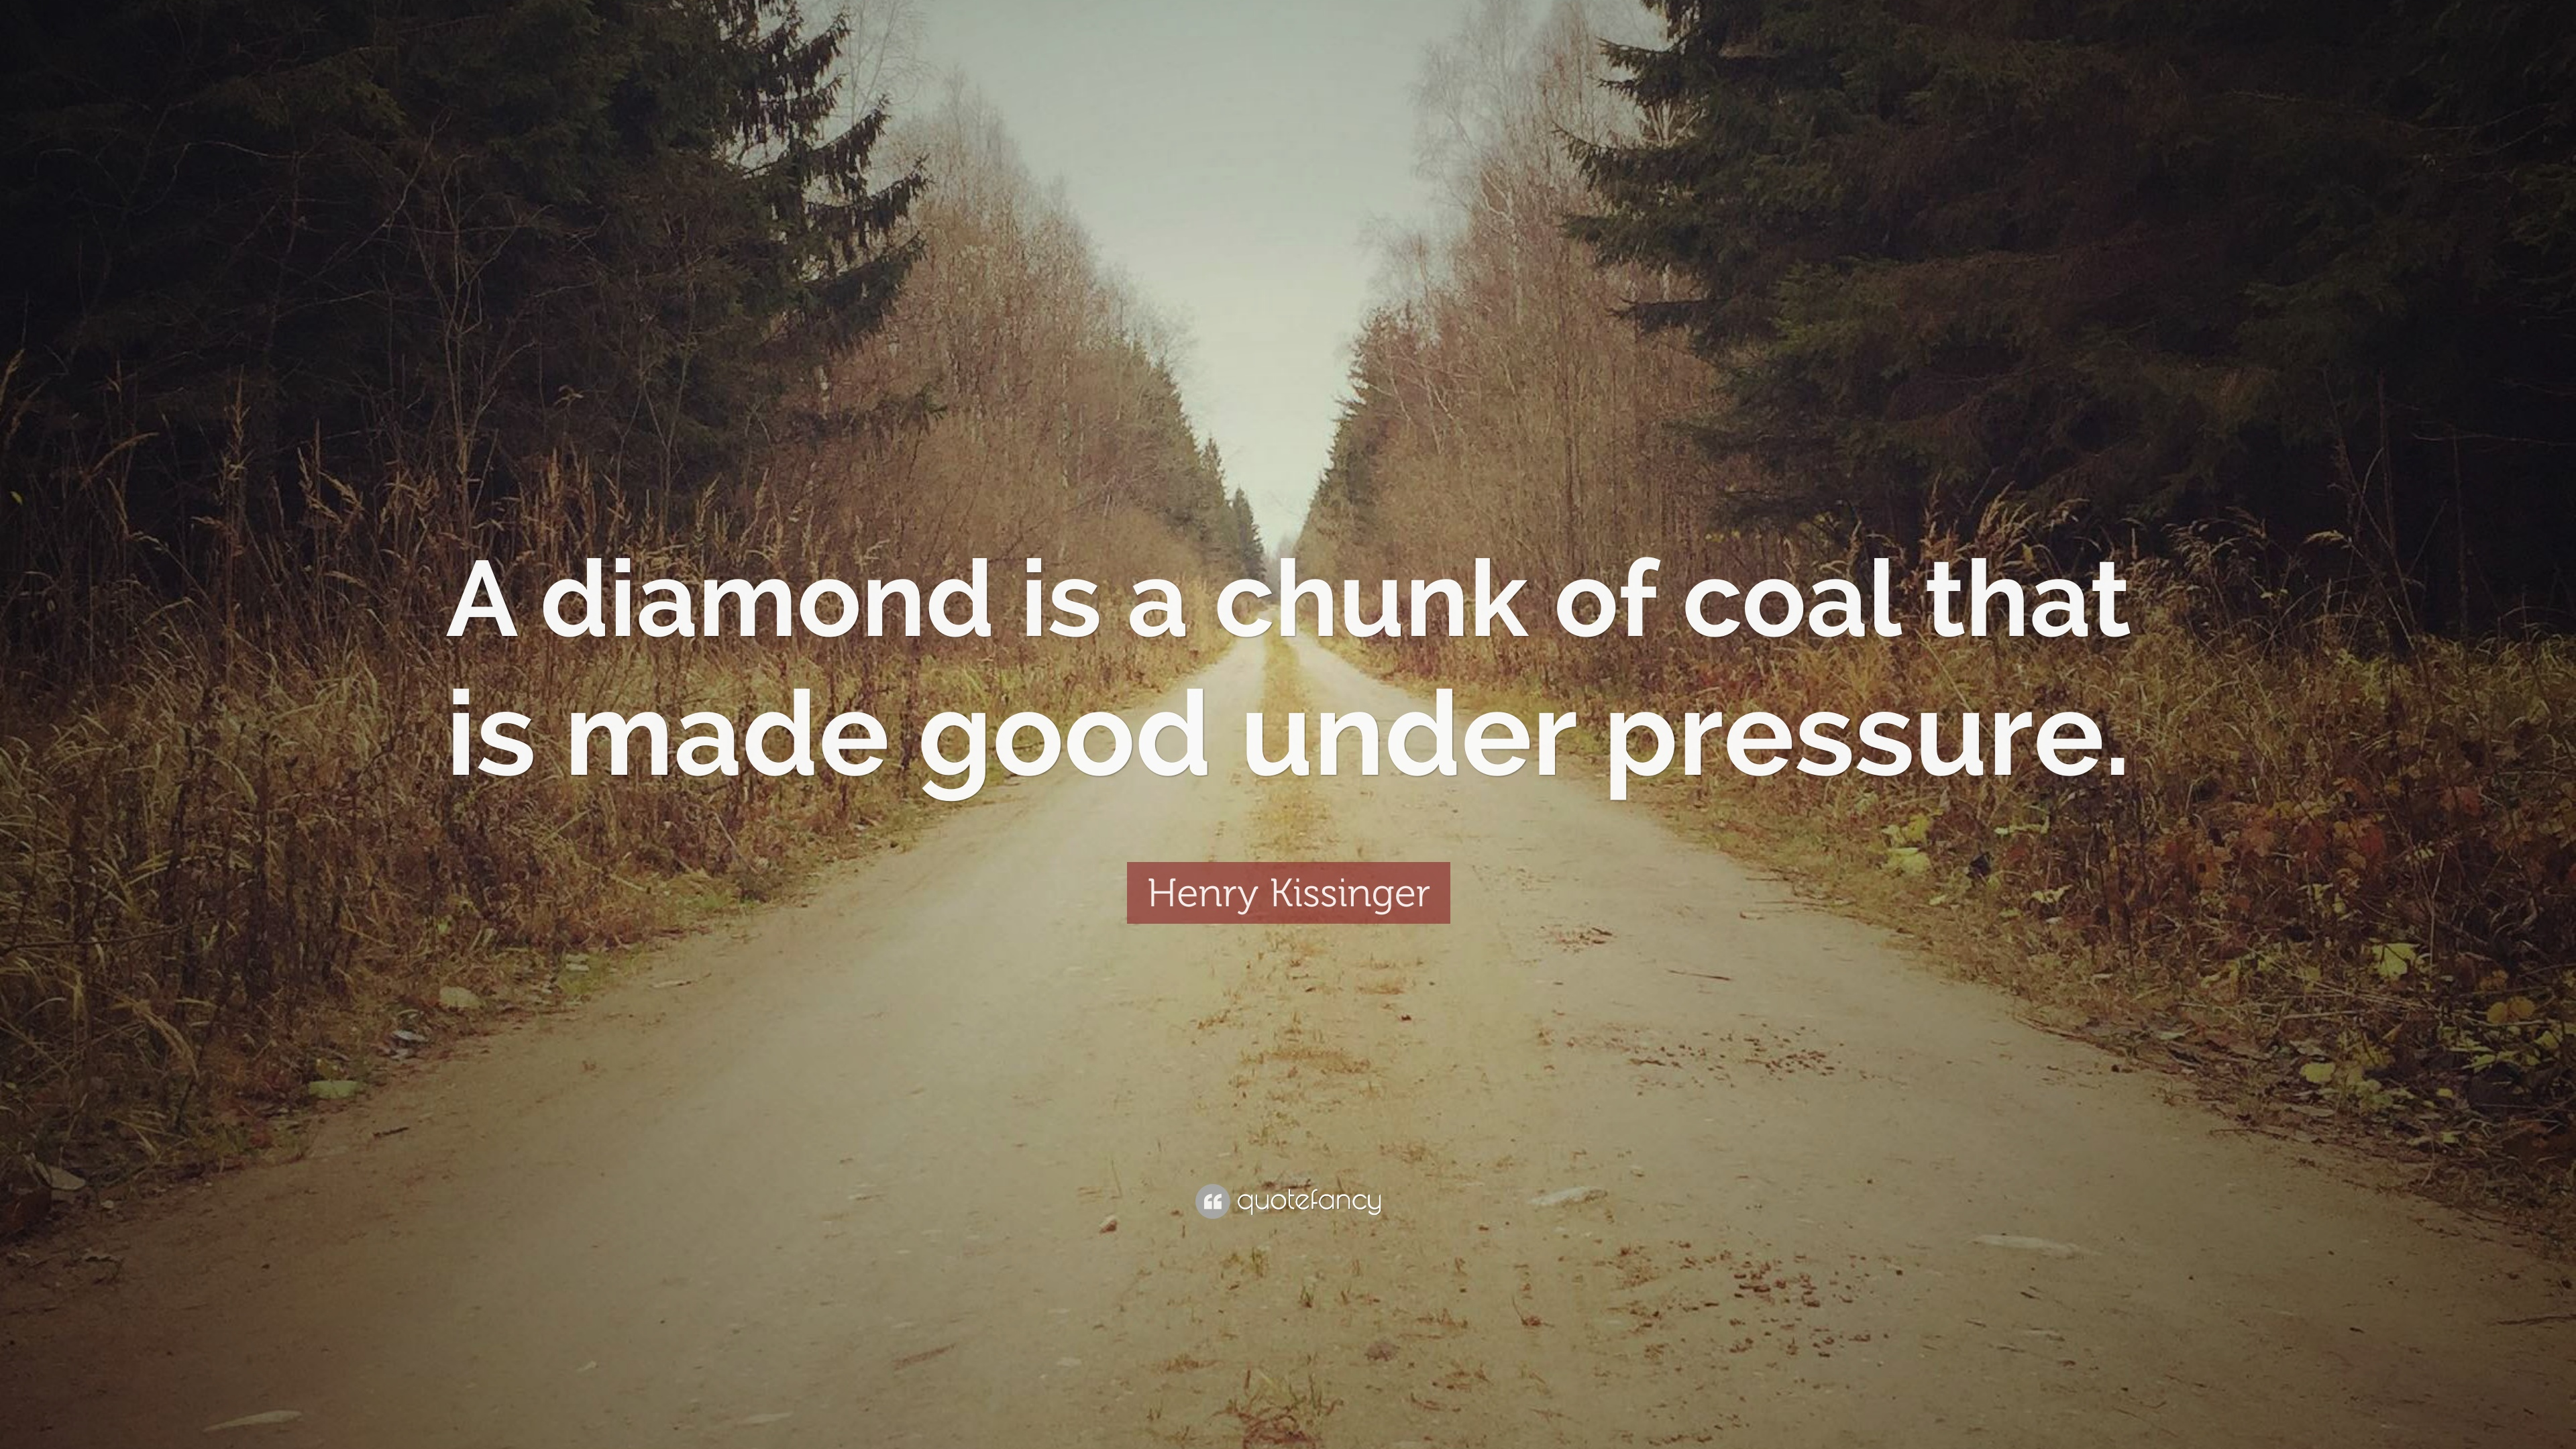 edison quote to the coal is job a piece that diamond of stuck thomas